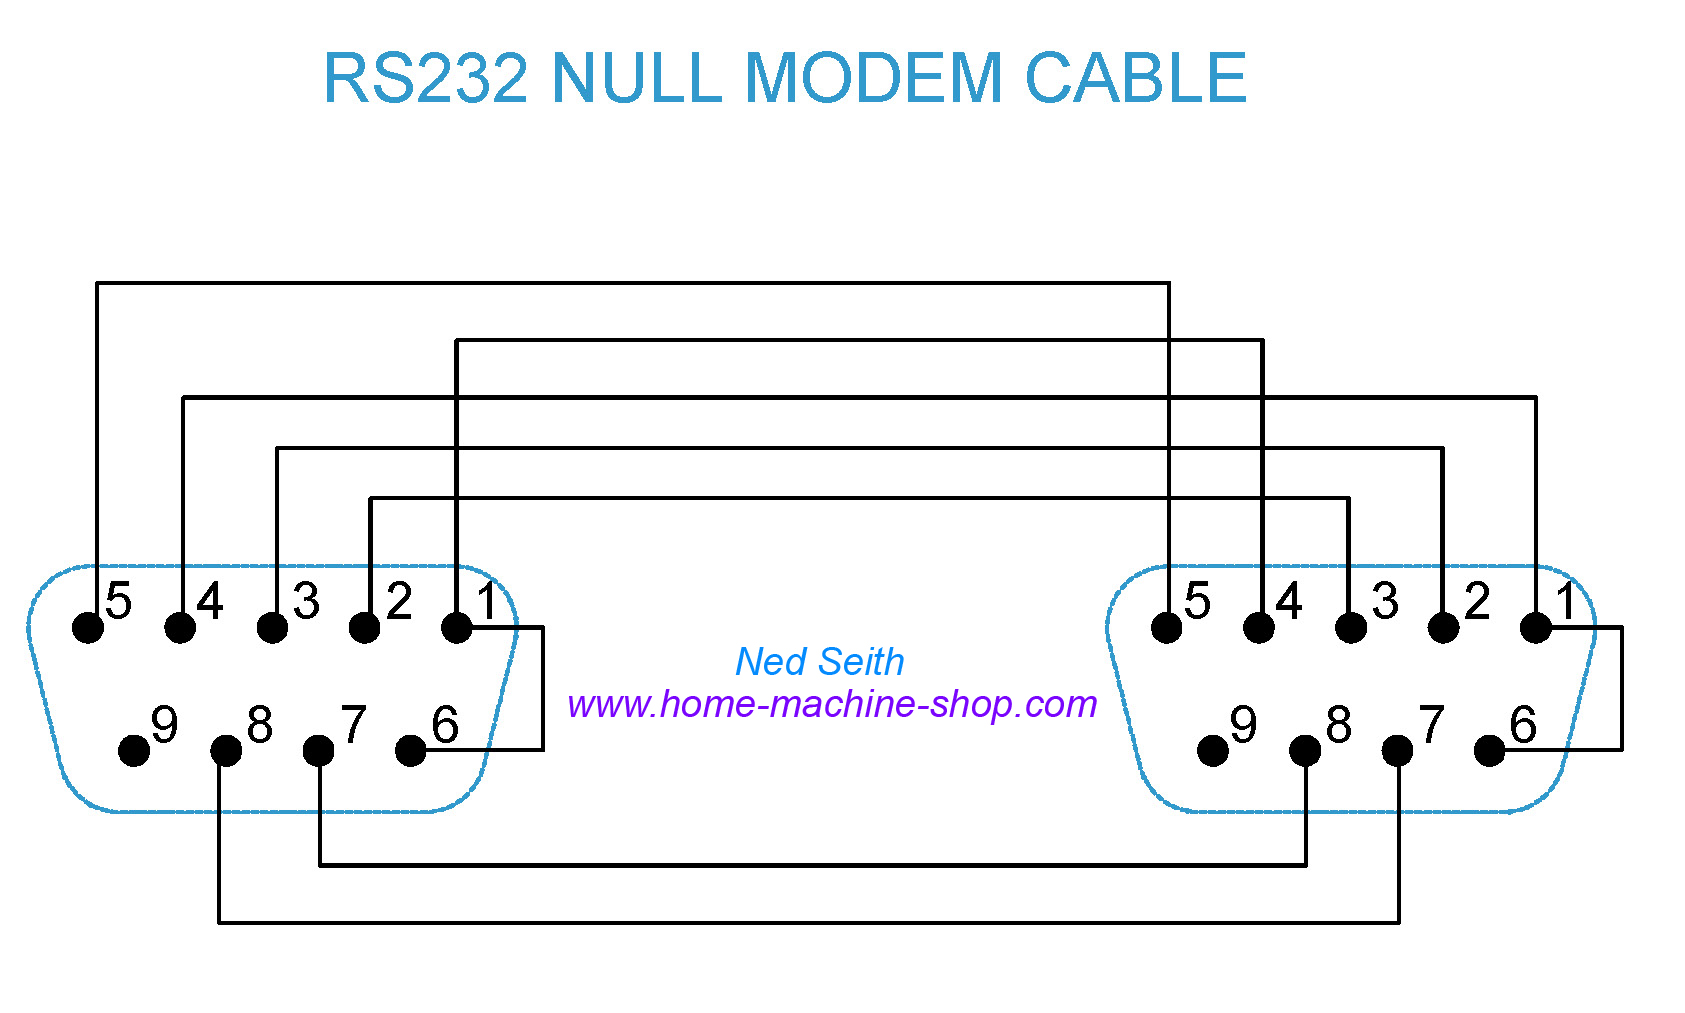 Pleasing Null Modem Cable Schematic Wiring Diagram Wiring Digital Resources Bemuashebarightsorg